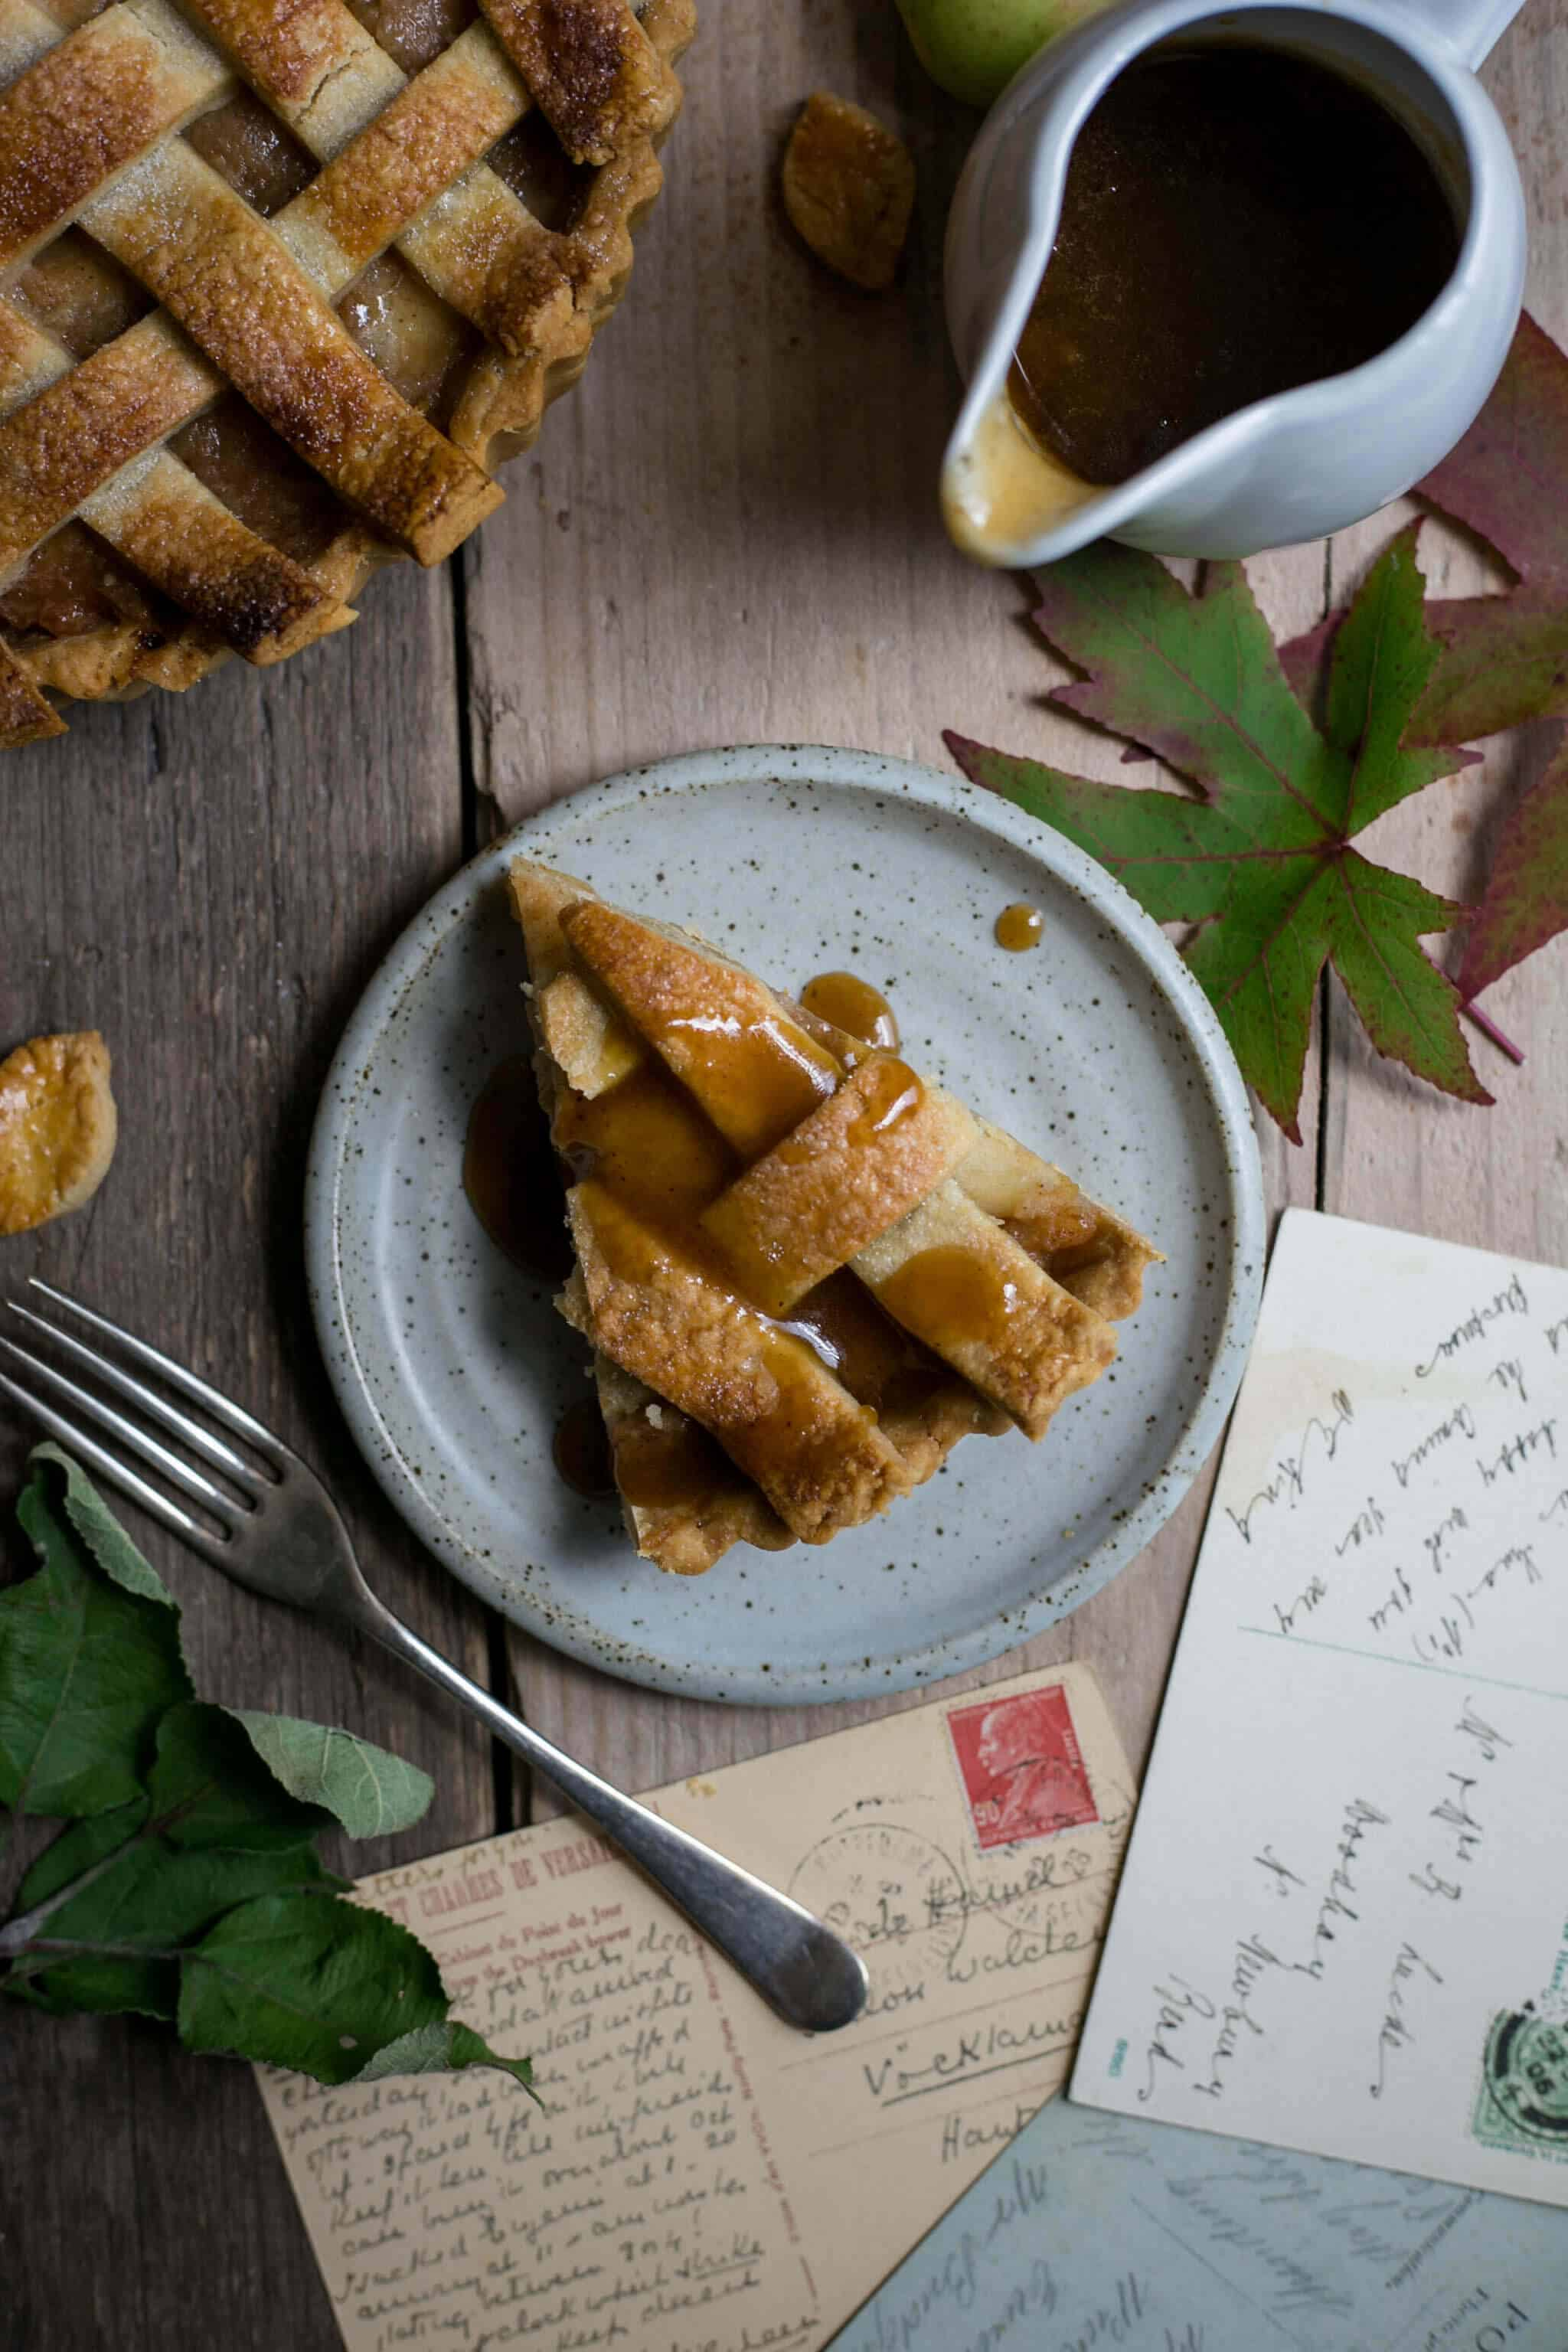 Superb recipe for delicious apple pie served with caramel sauce #vegan #apple pie | via @annabanana.co